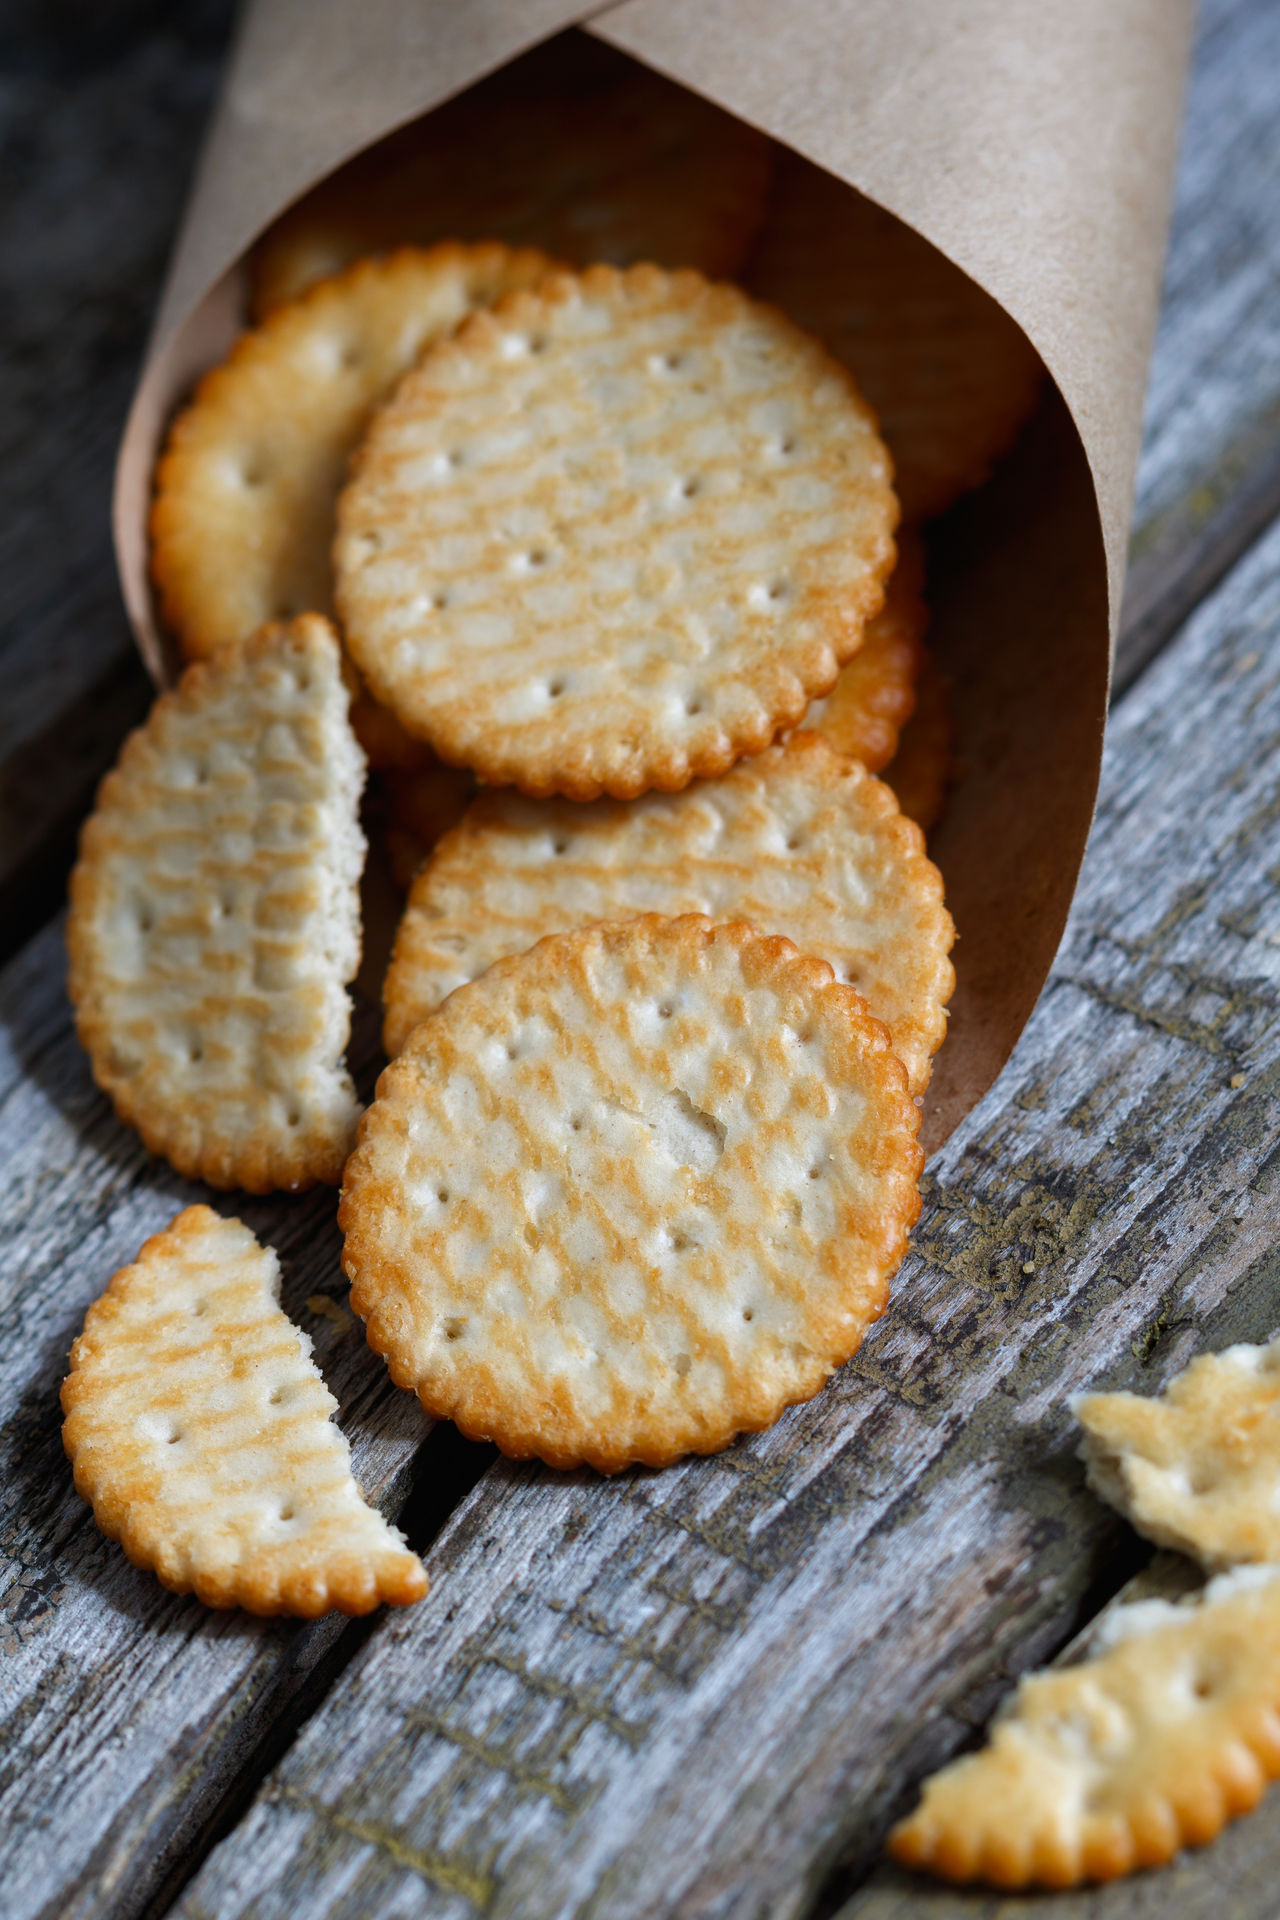 Cookies Bread Close-up Crackers Day Food Food And Drink Freshness Healthy Eating Indoors  No People Wood - Material